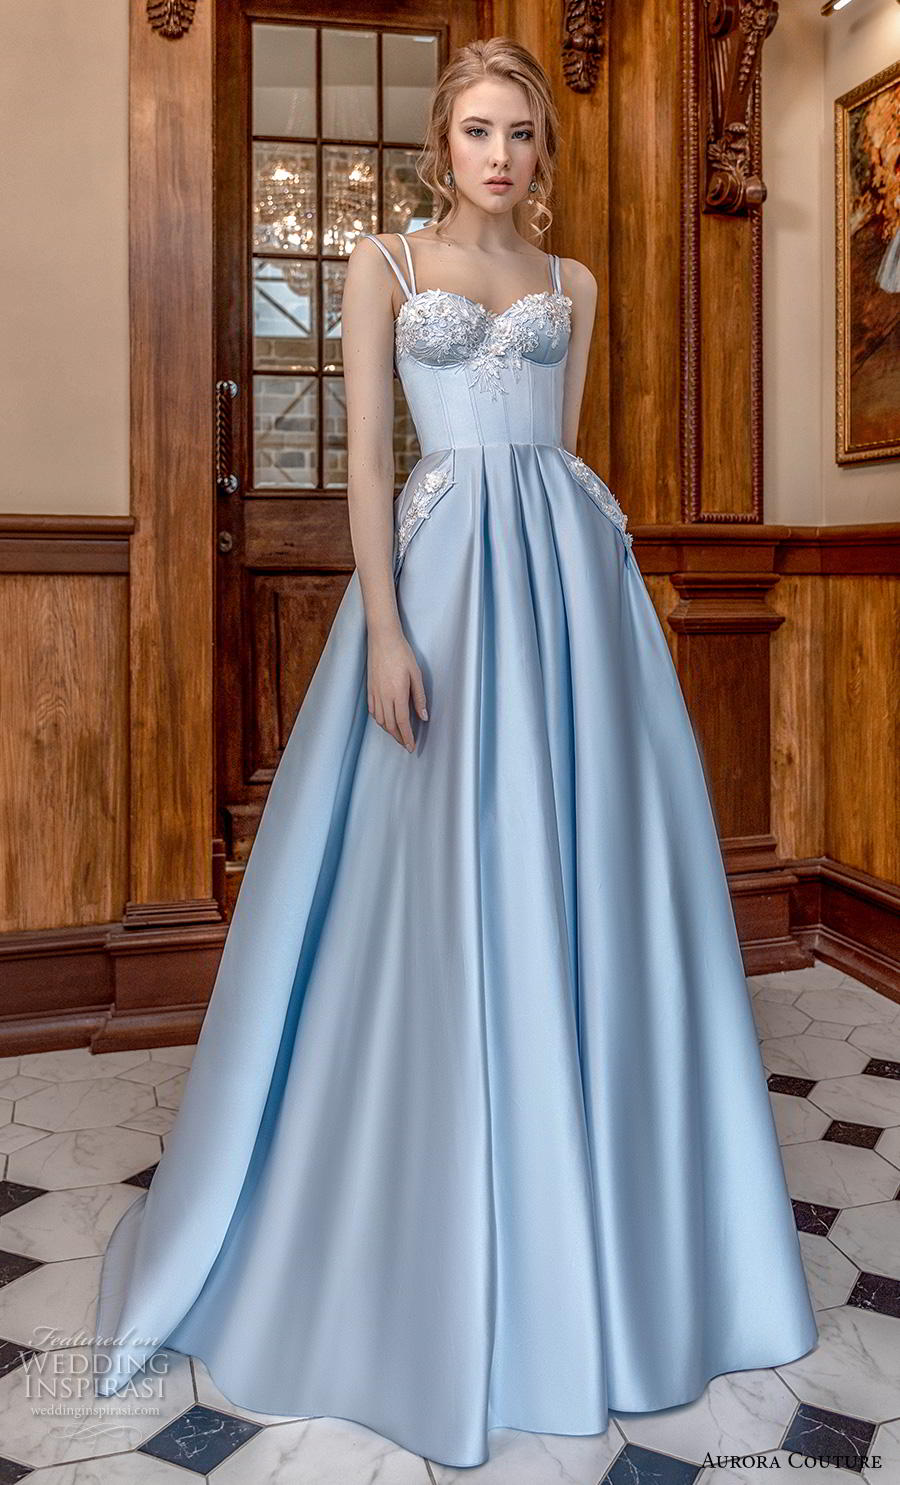 aurora couture 2019 bridal double strap sweetheart neckline heavily embellished bodice bustier blue ball gown a  line wedding dress corset back sweep train (17) mv